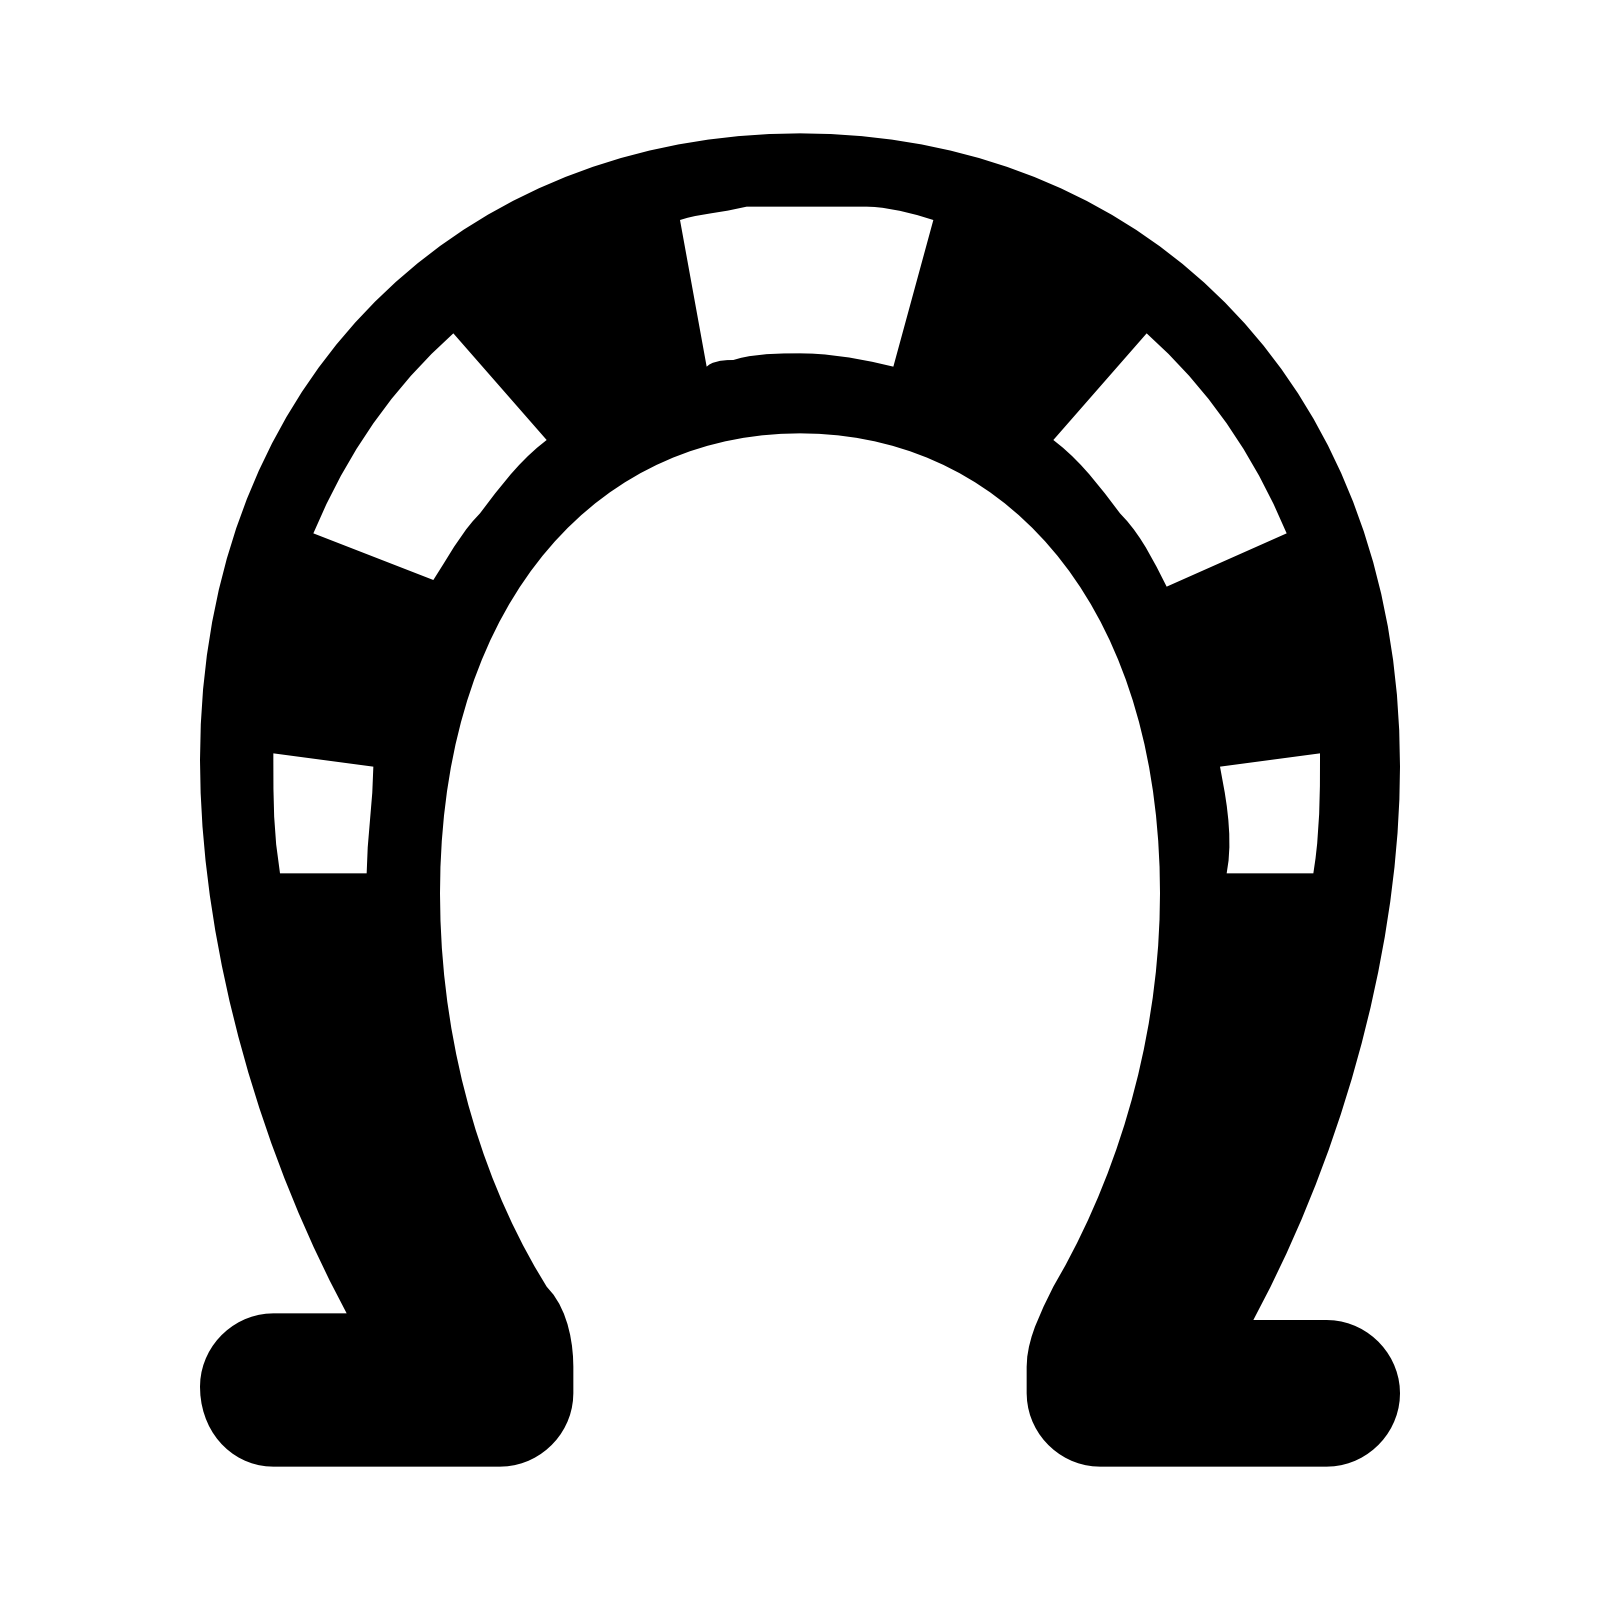 Horseshoe PNG Images Transparent Free Download.